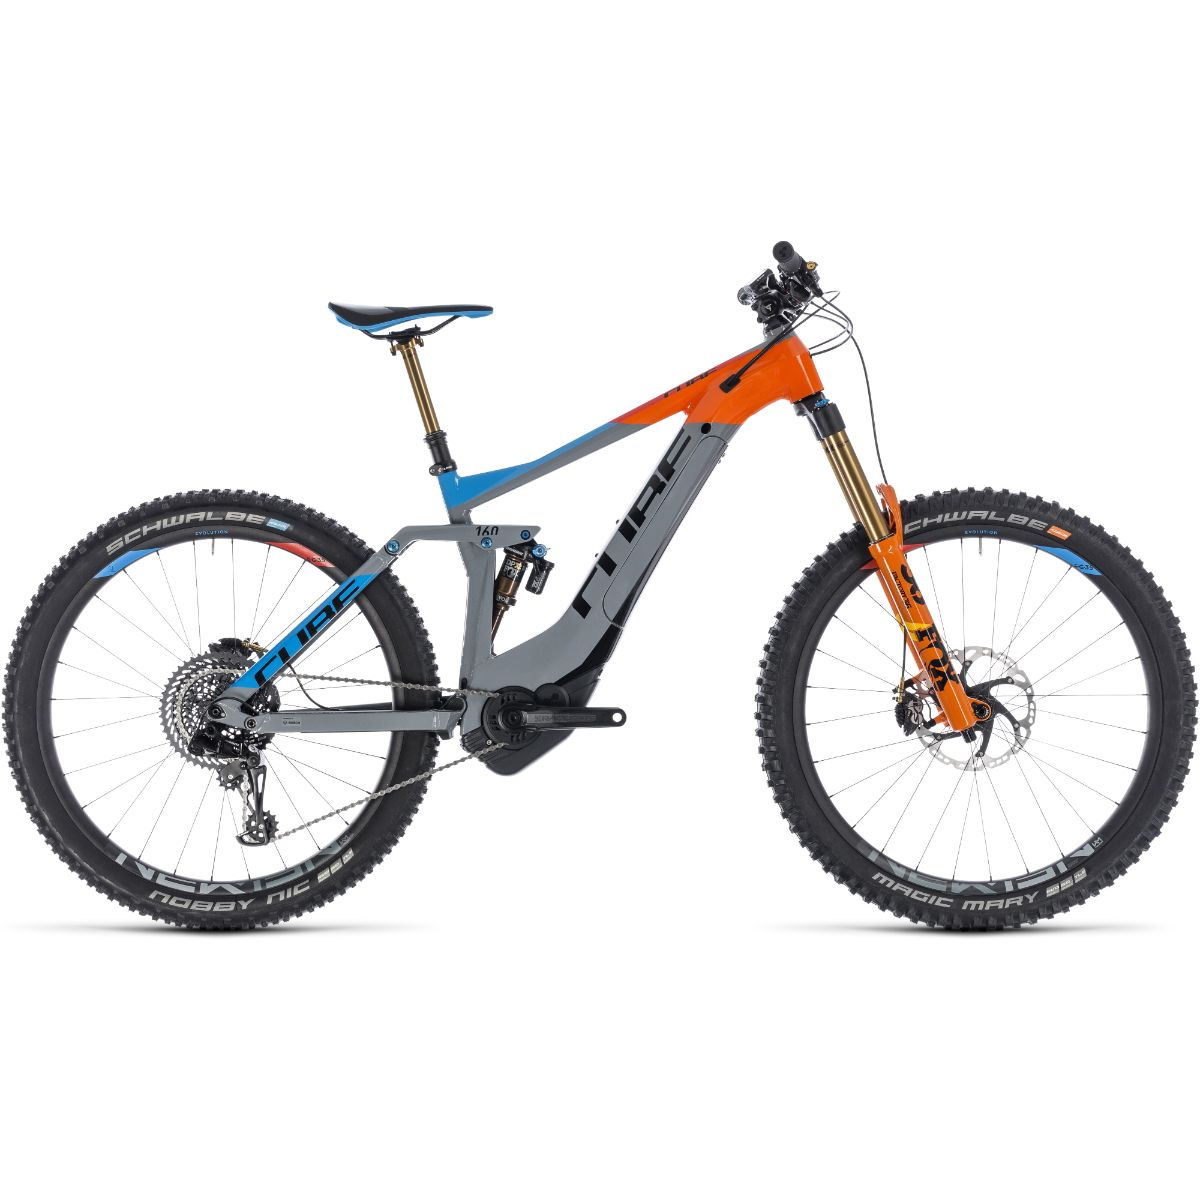 Cube Stereo Hybrid 160 Action Team 500 2018 Electric Mountain Bike Electric Mountain Bike Bike Road Mountain Bike